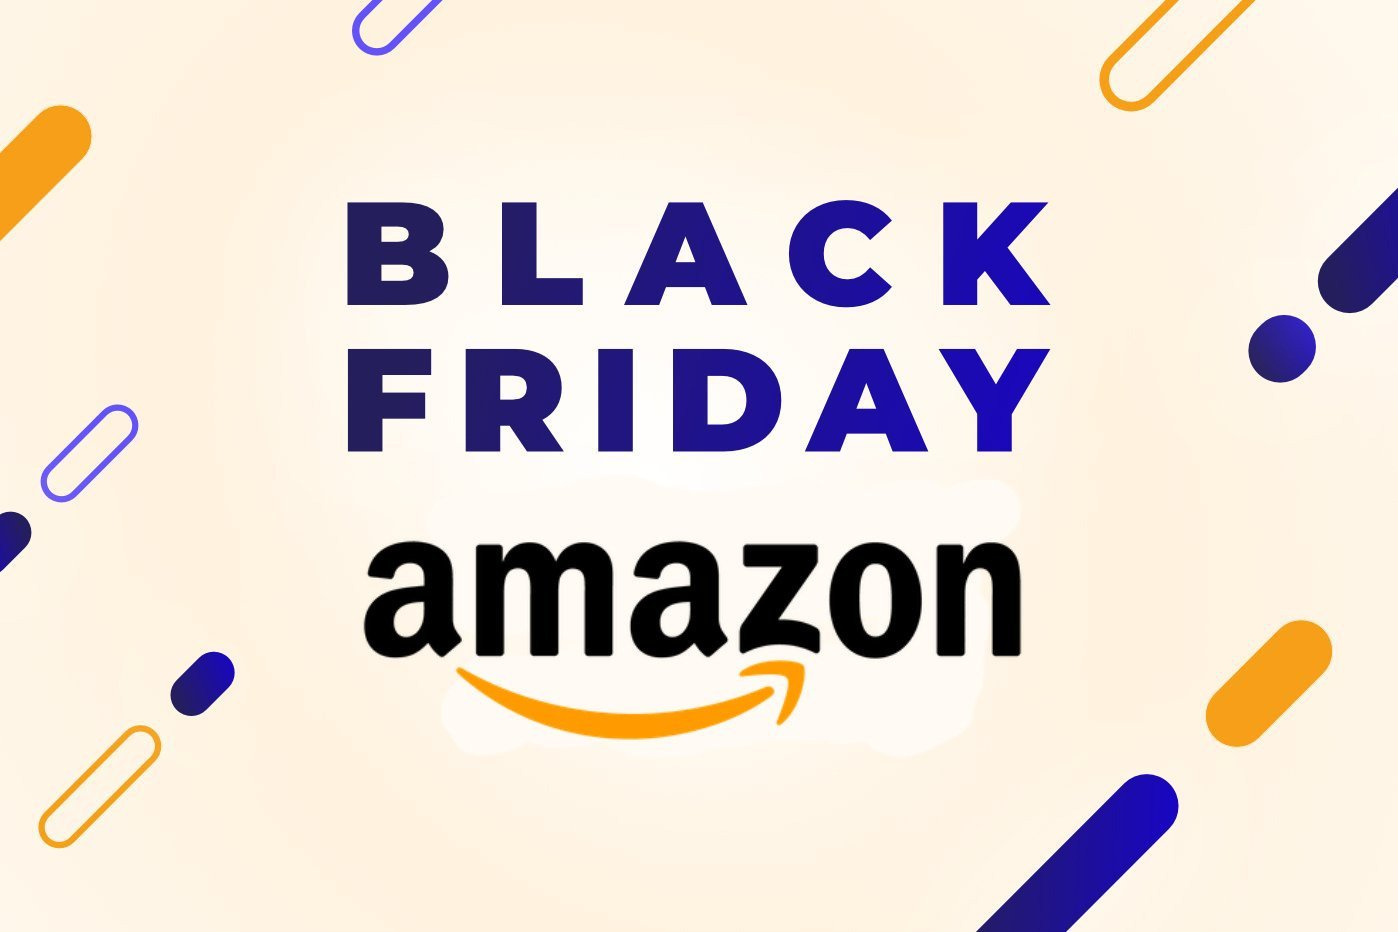 Black Friday week-end sur Amazon : voici les 50 meilleures offres